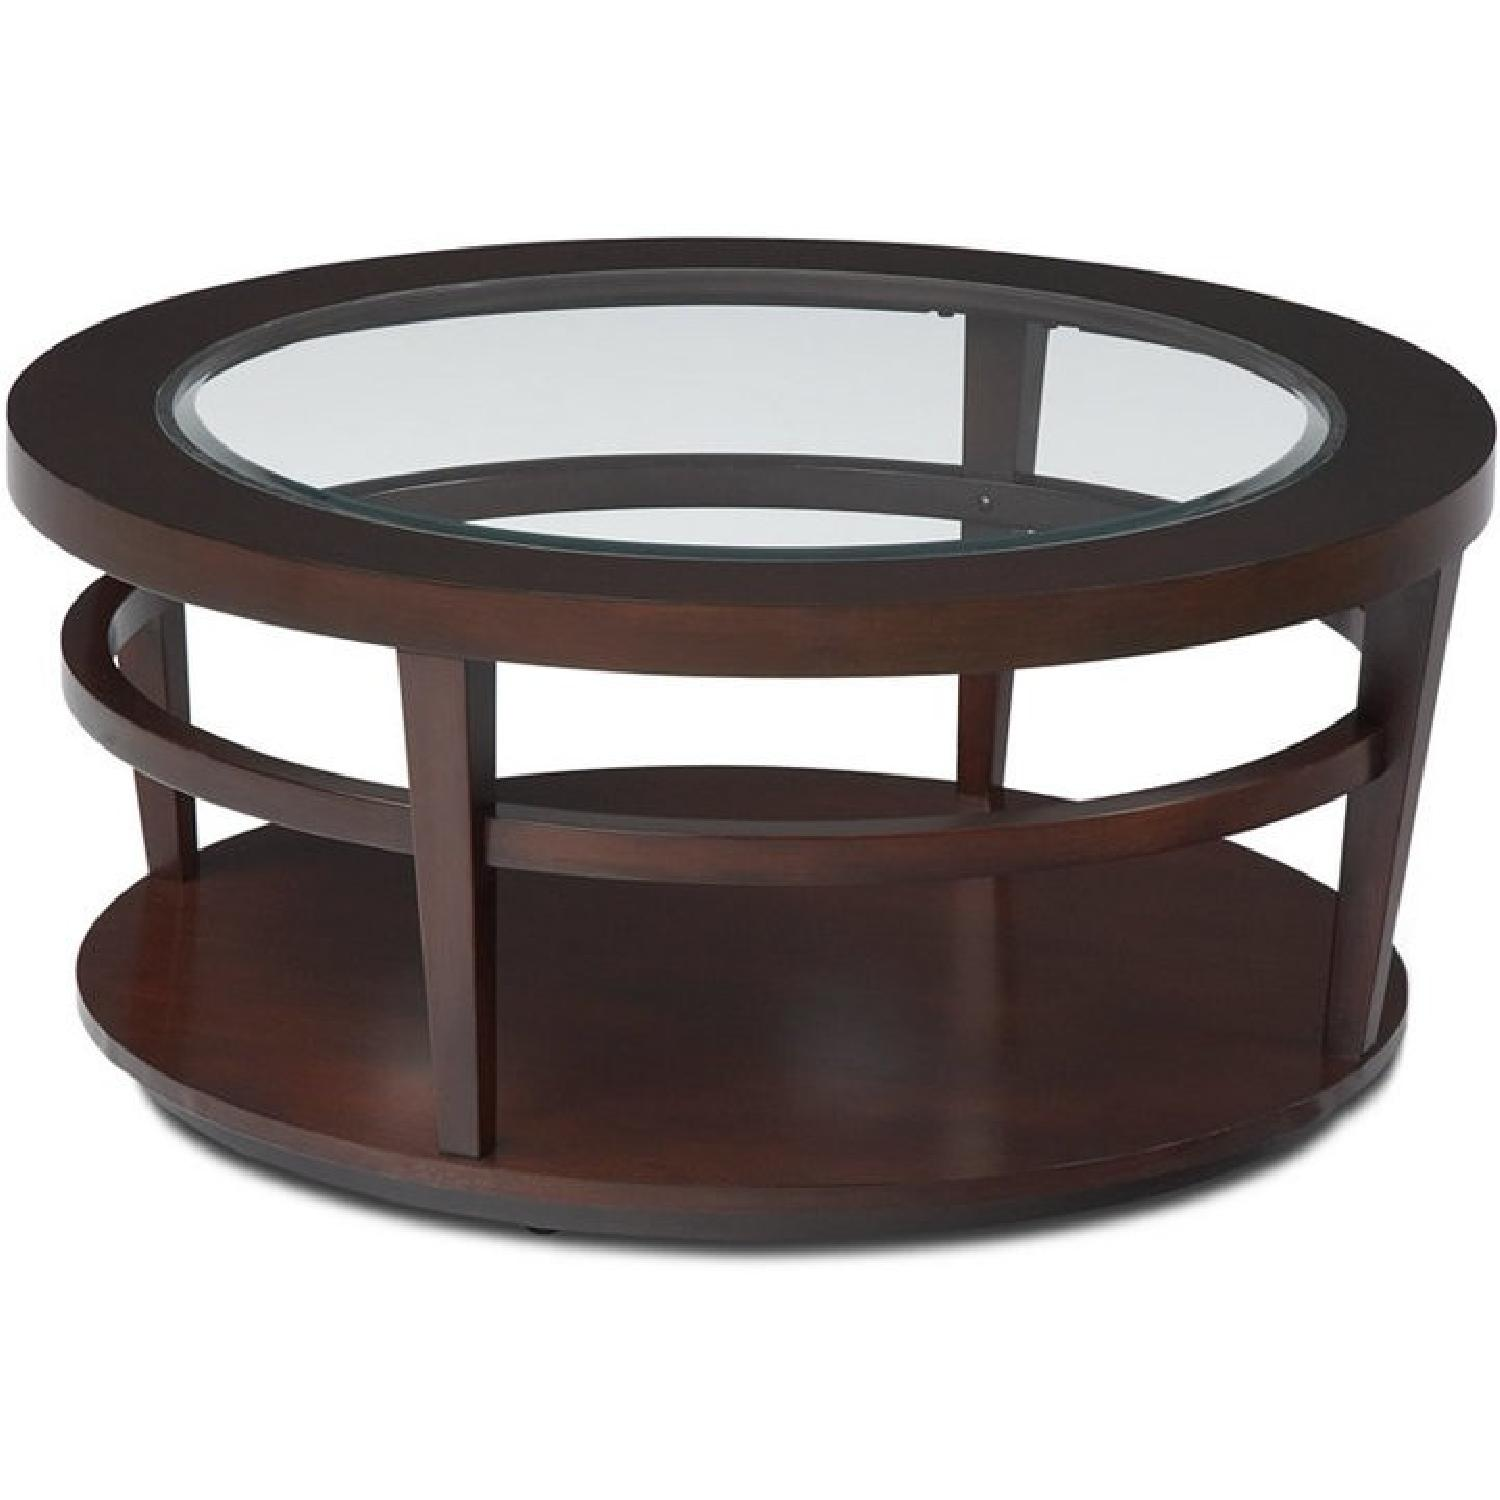 Macy's Round Wood/Glass Coffee Table on Casters - image-0